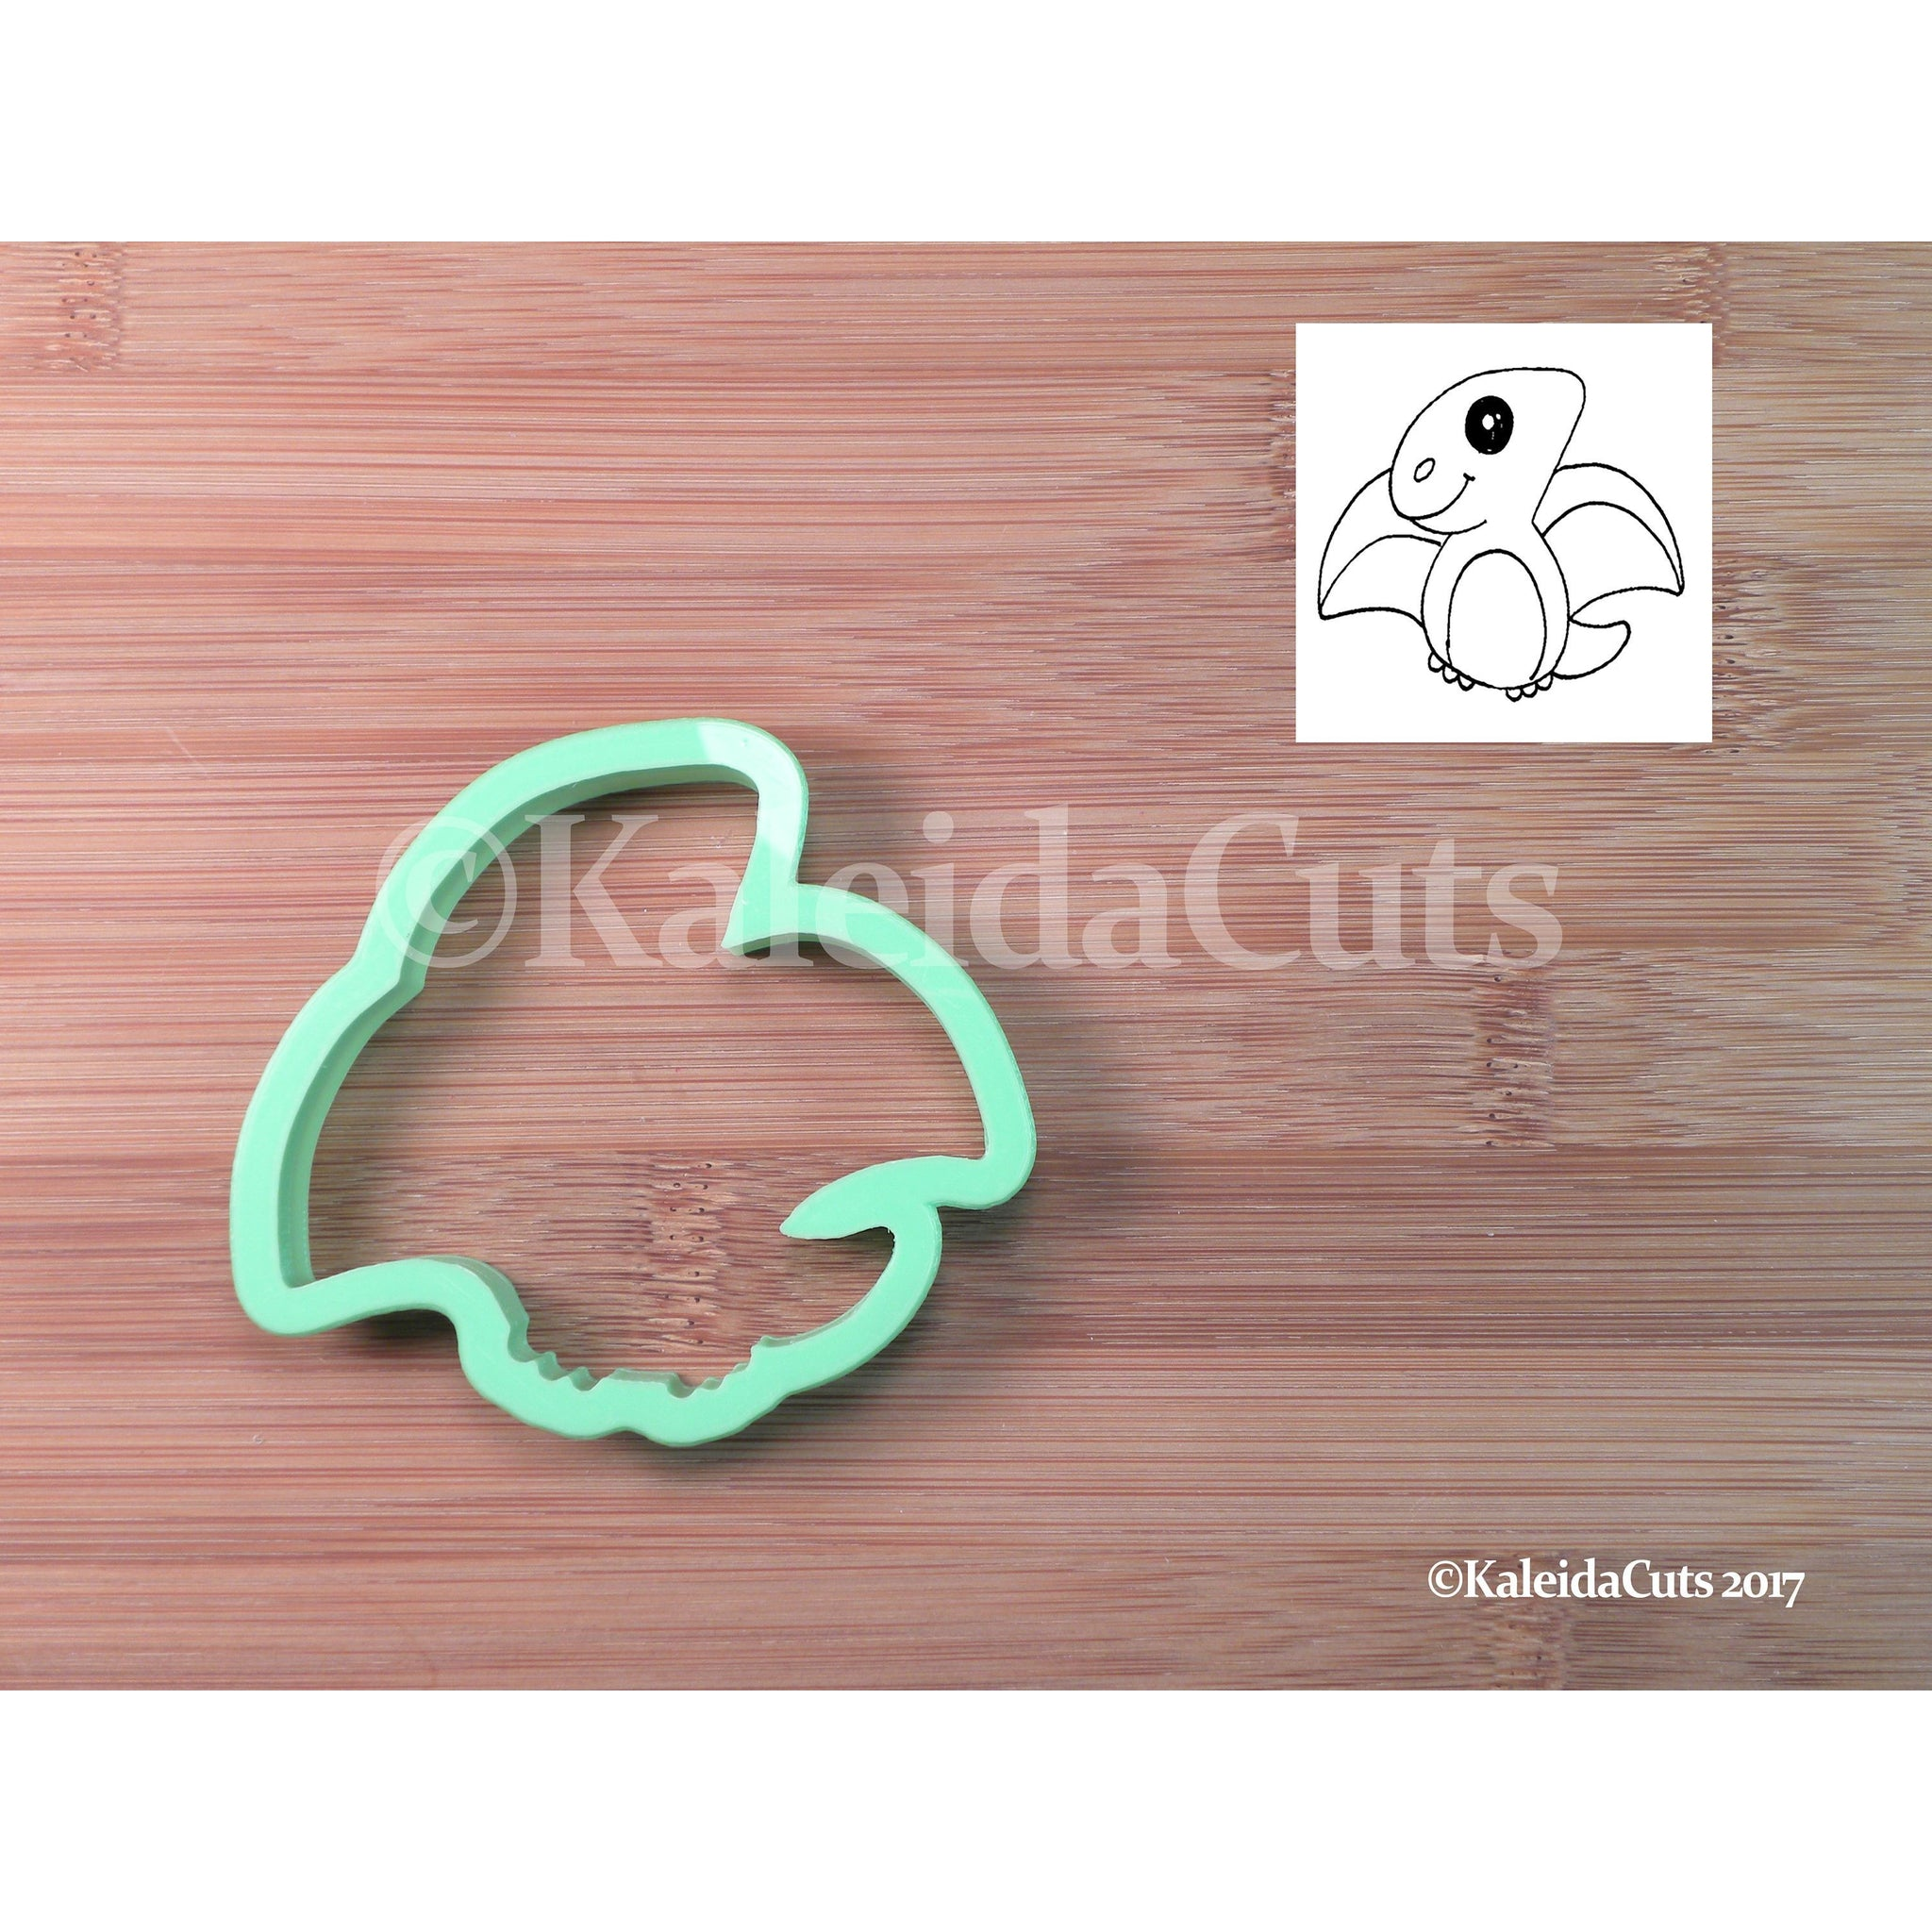 Pterodactyl Cookie Cutter with detail